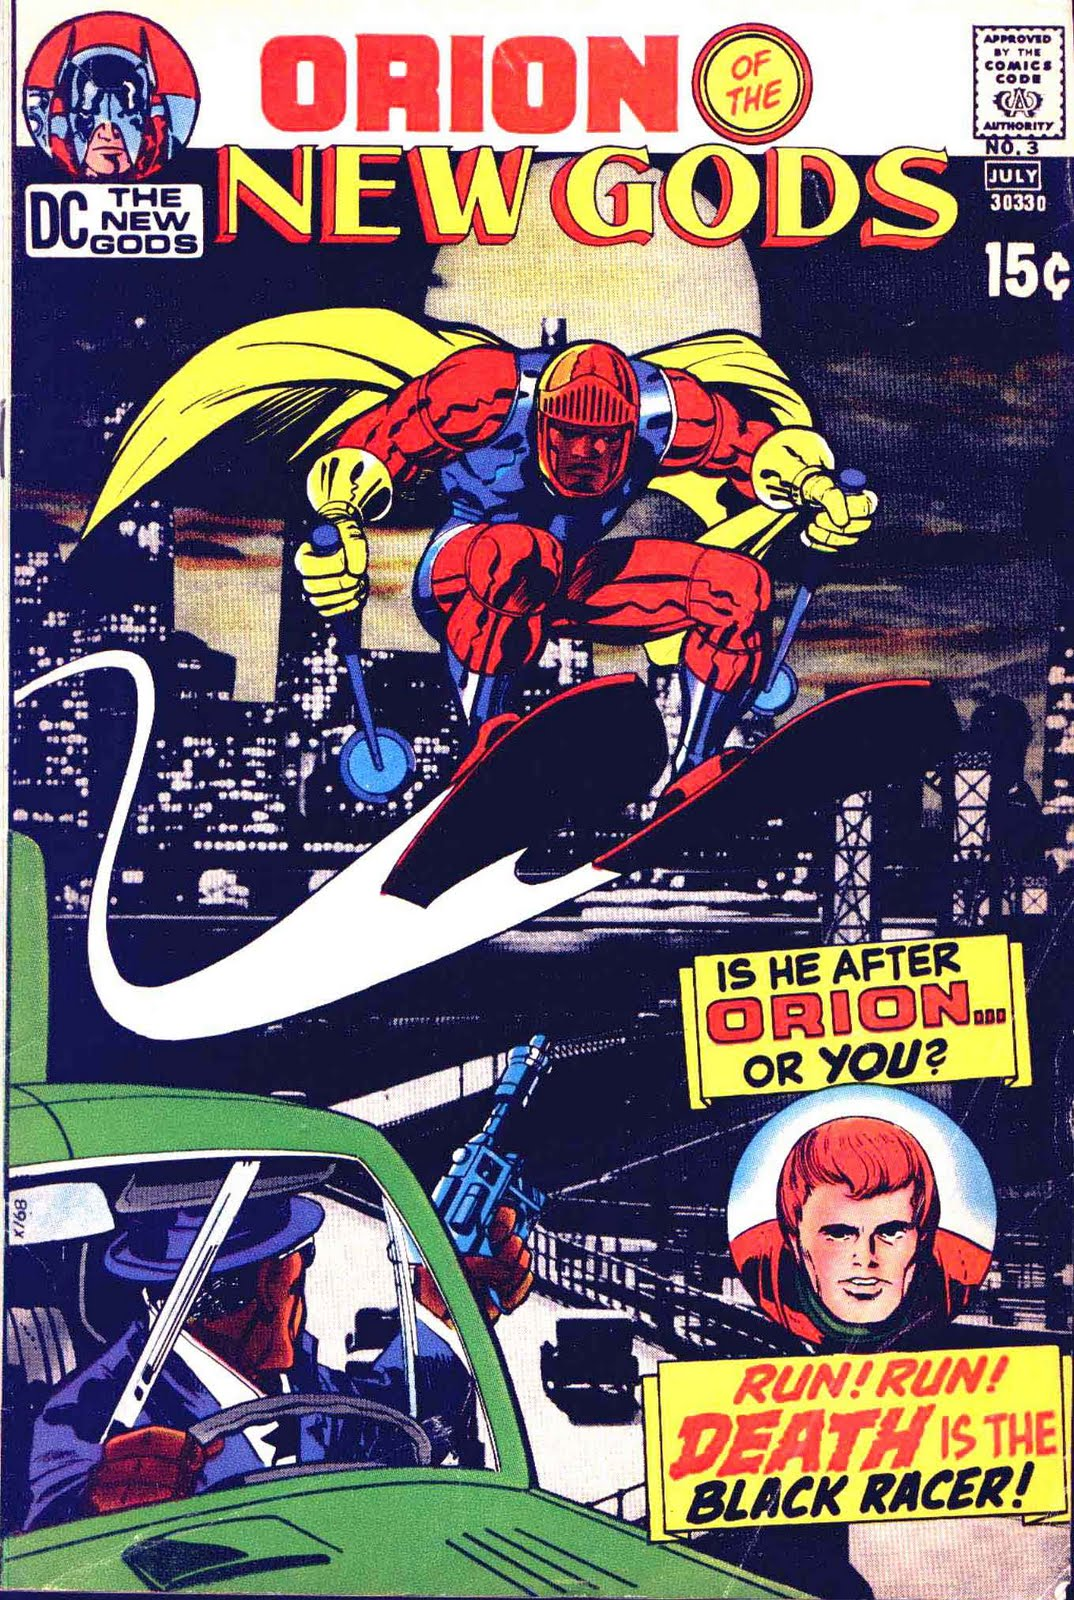 New Gods v1 #3 dc bronze age comic book cover art by Jack Kirby